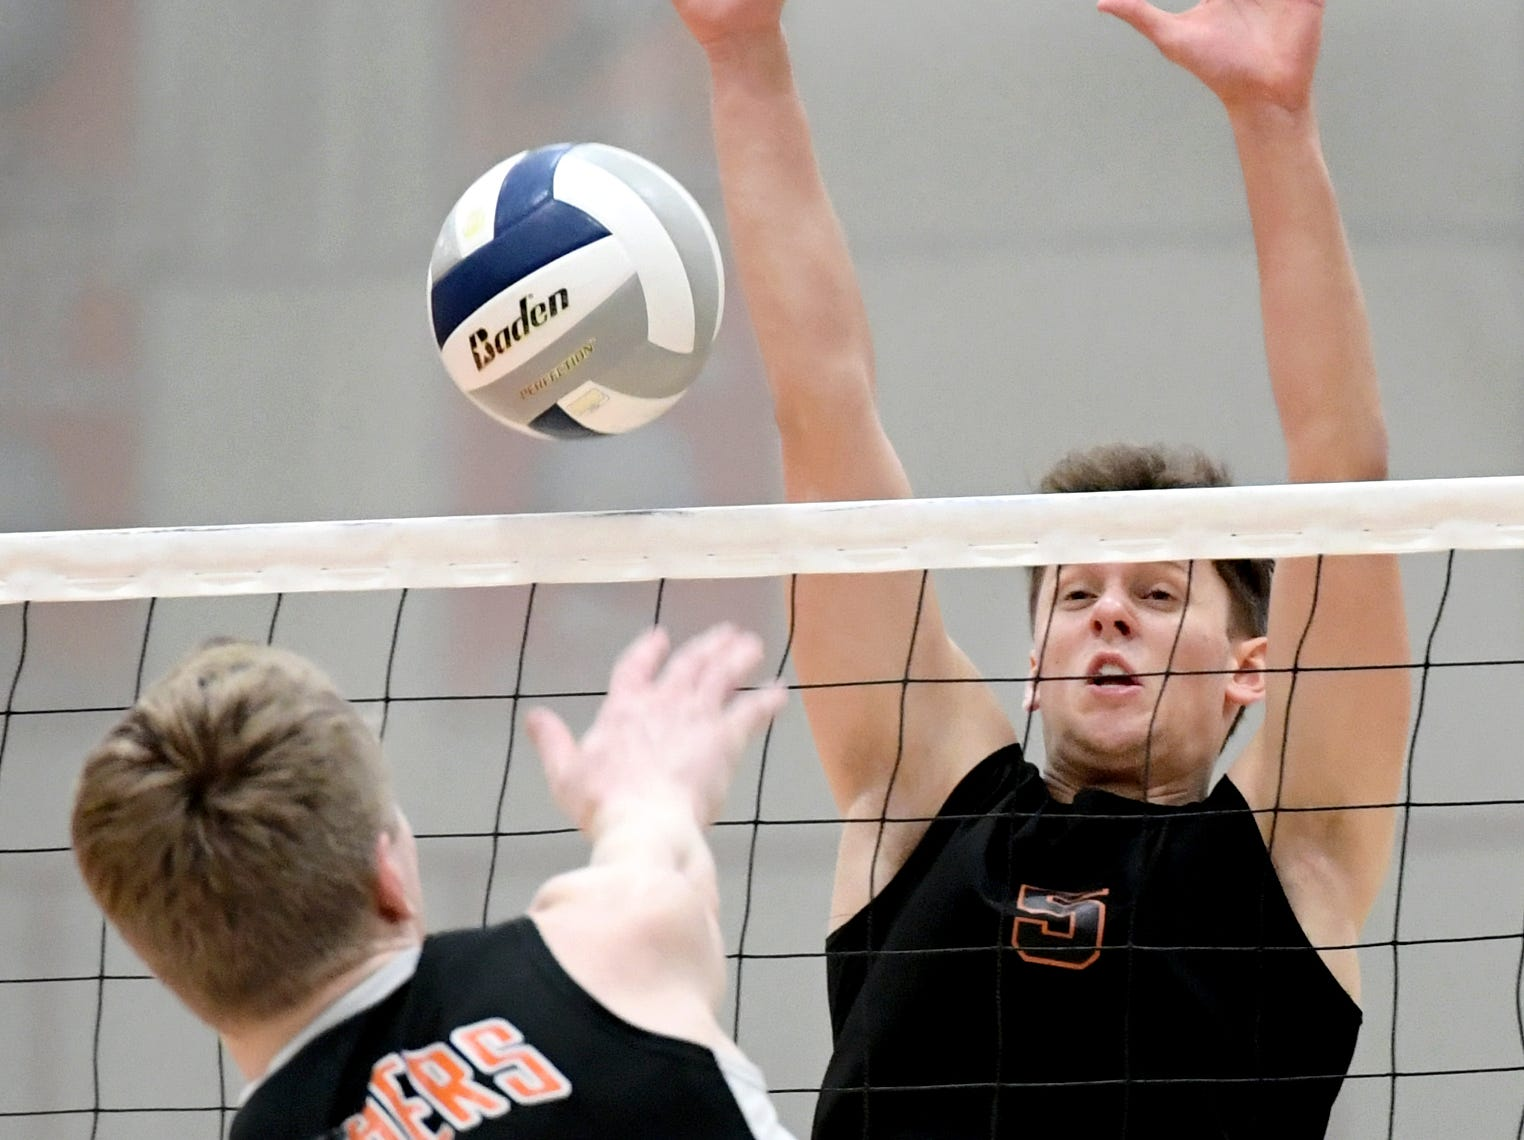 Northeastern's Nate Wilson tries to block a shot by Central's Braden Richard, left, during action at Central York Tuesday, May 7, 2019. The Bobcats earned the York-Adams League regular-season title with a 3-1 win. Bill Kalina photo